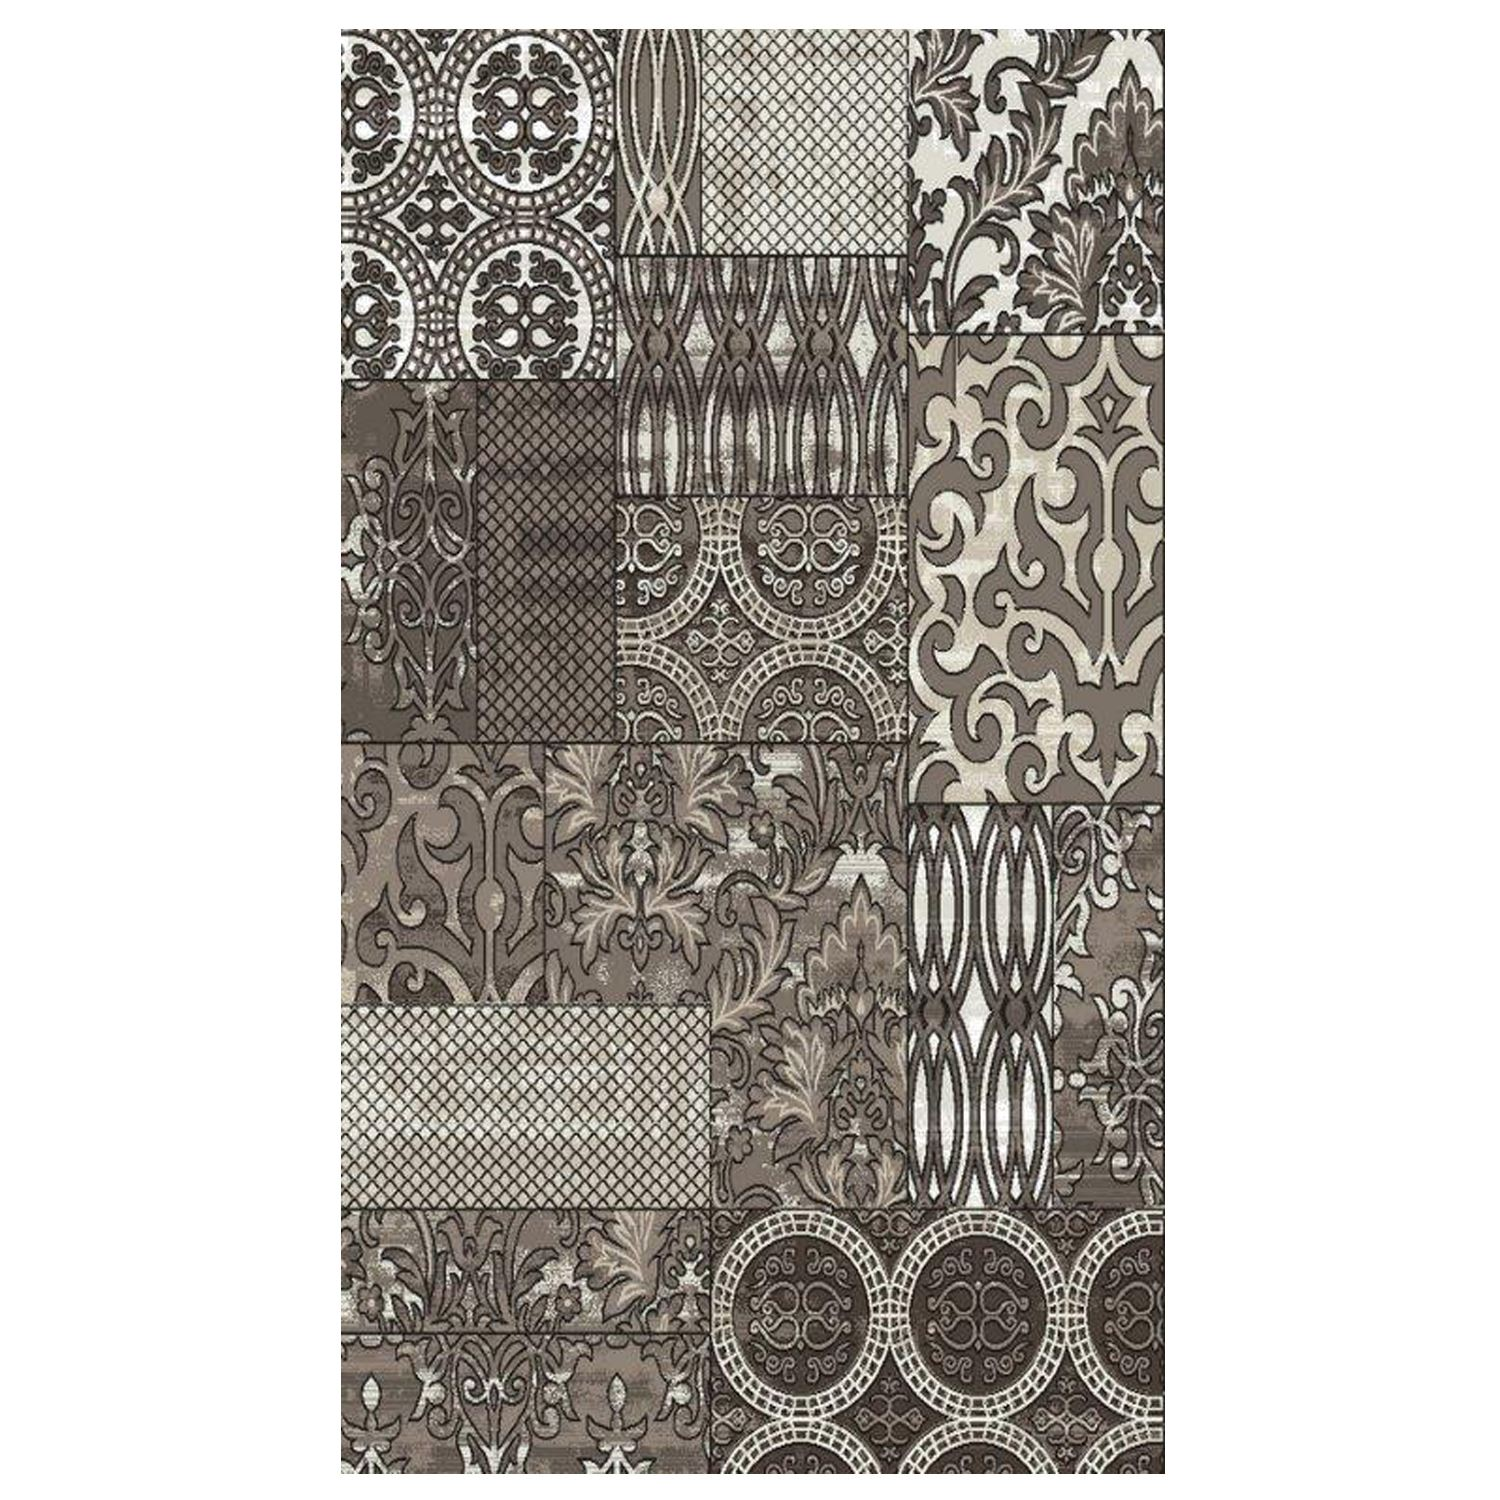 Jewel Dark Beige Rug Collection,